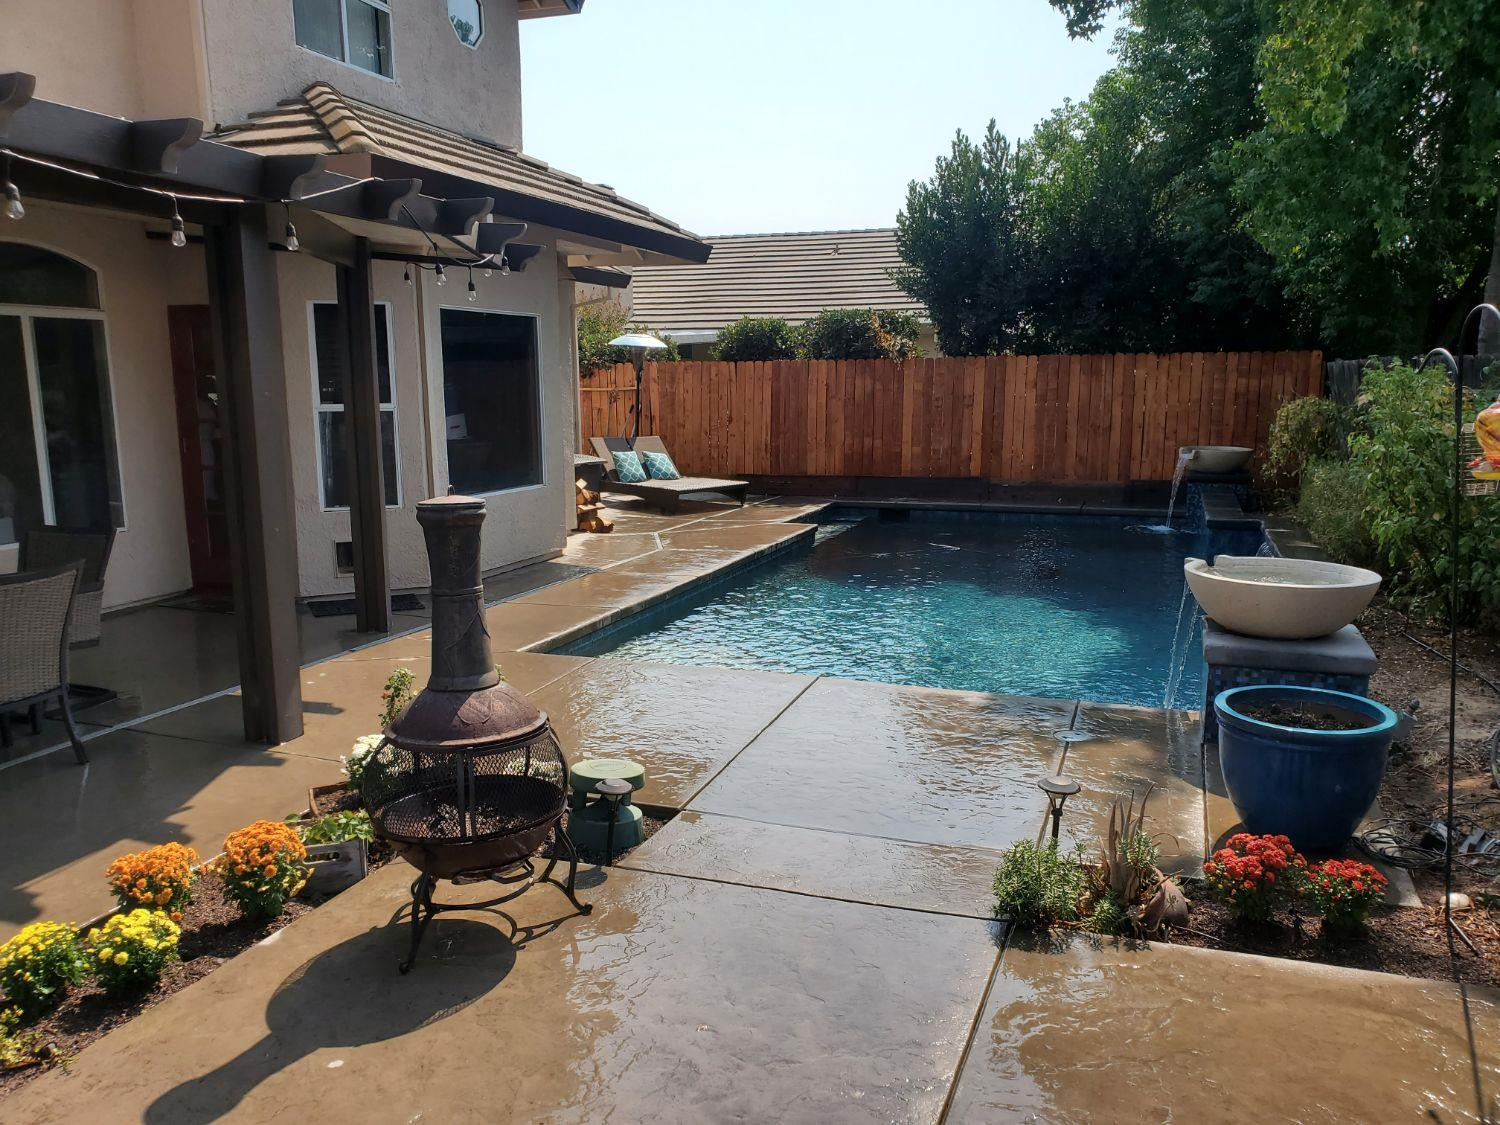 Photo 4 for Listing #221120799